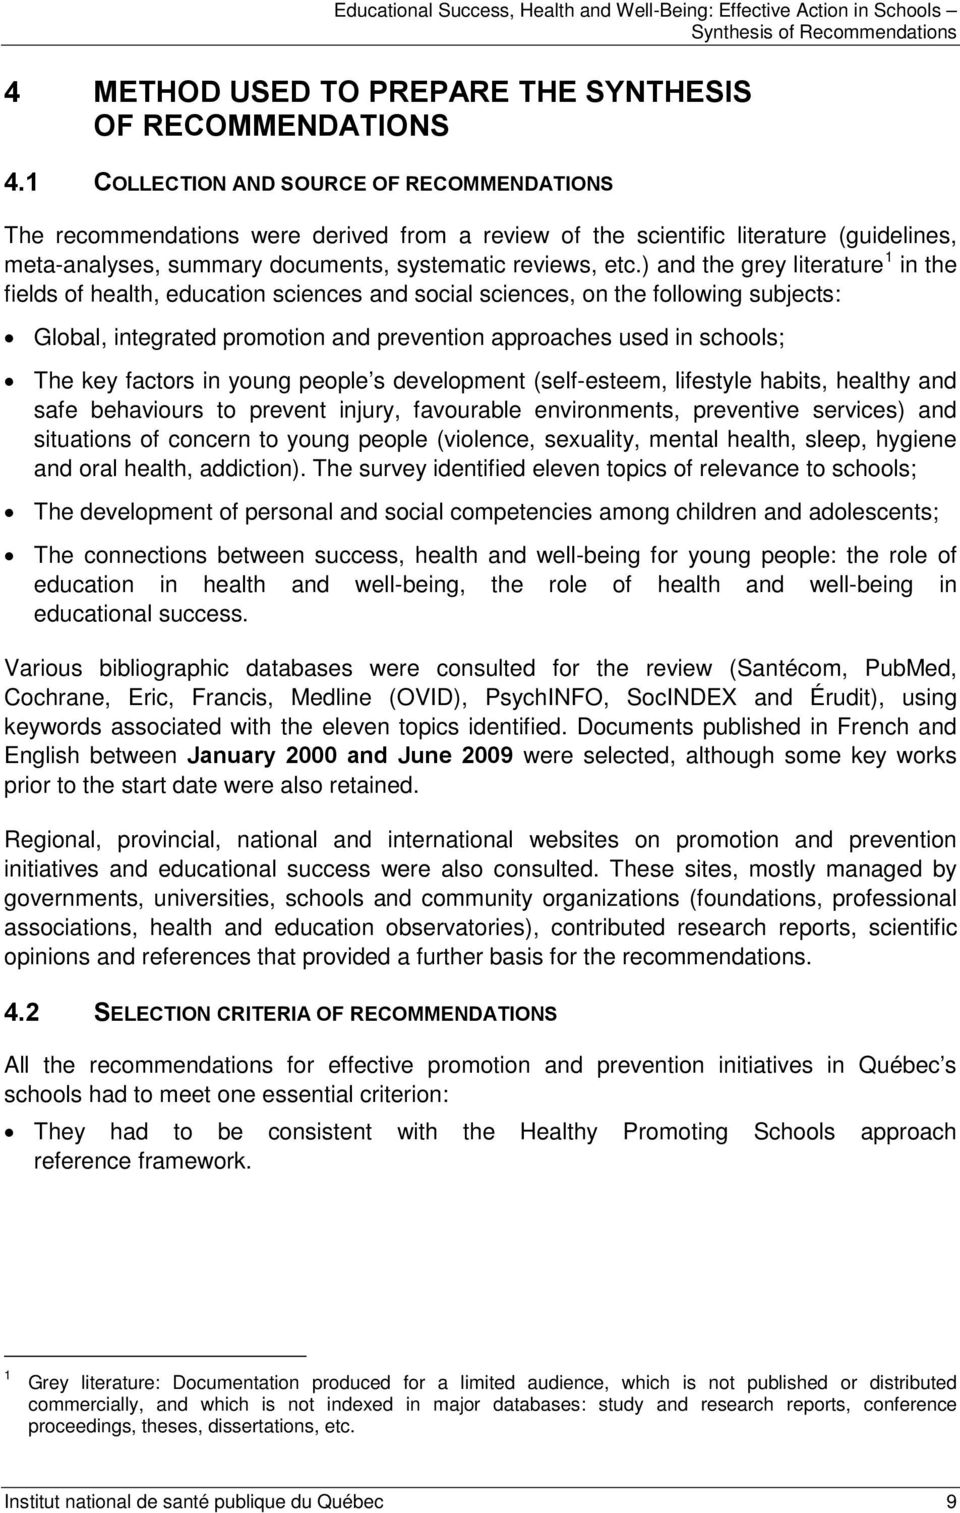 ) and the grey literature 1 in the fields of health, education sciences and social sciences, on the following subjects: Global, integrated promotion and prevention approaches used in schools; The key